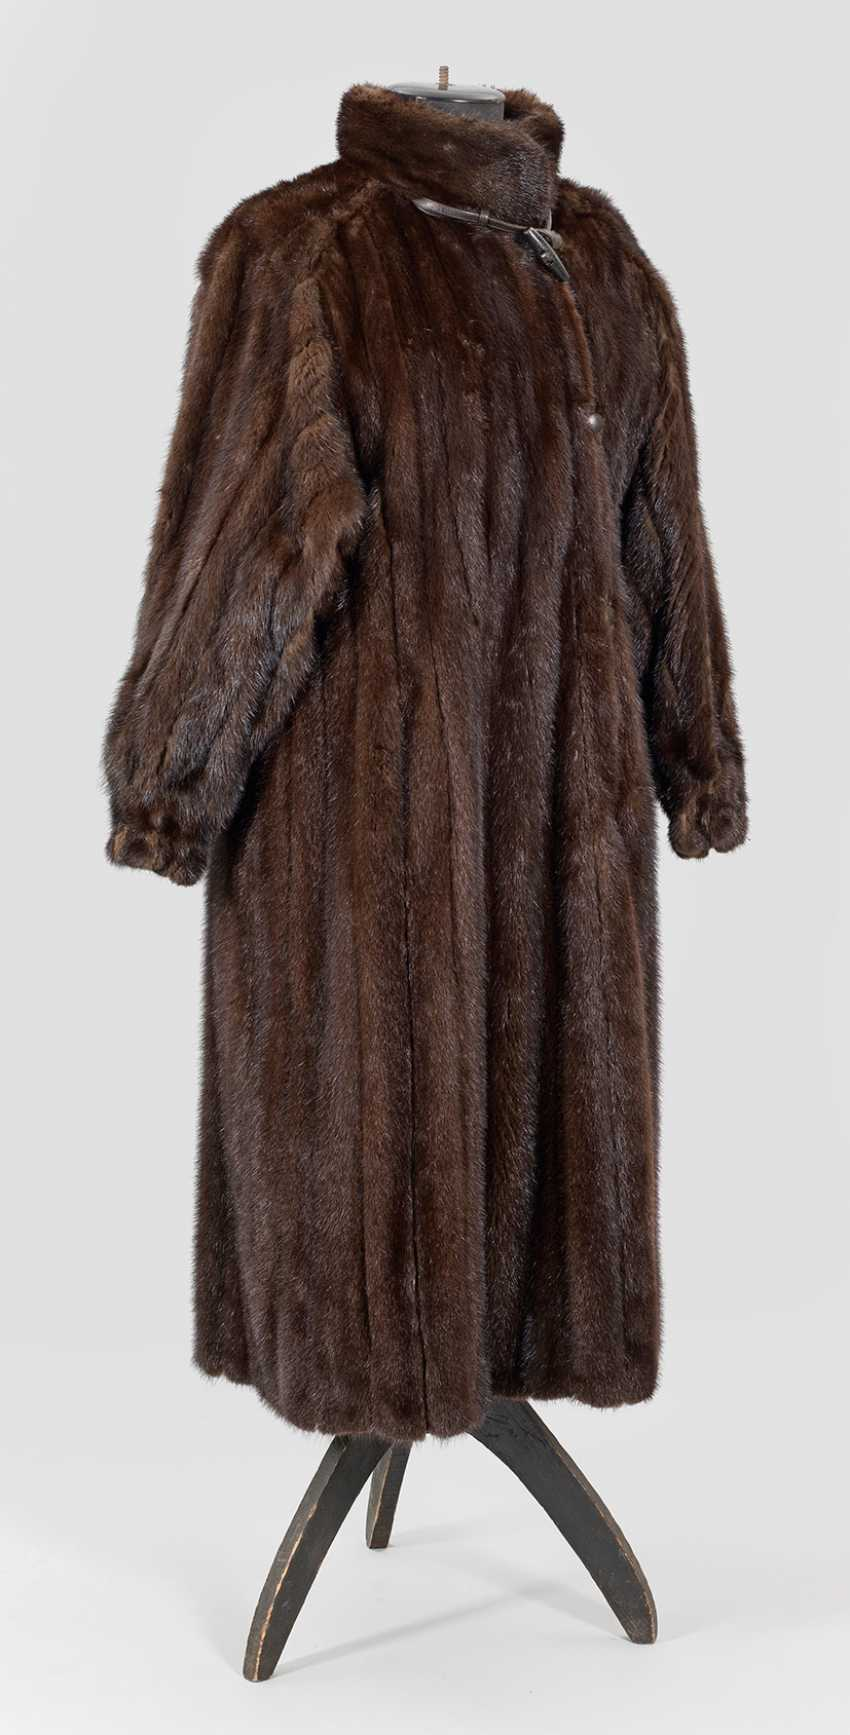 Vintage mink coat from the ' 70s - photo 1